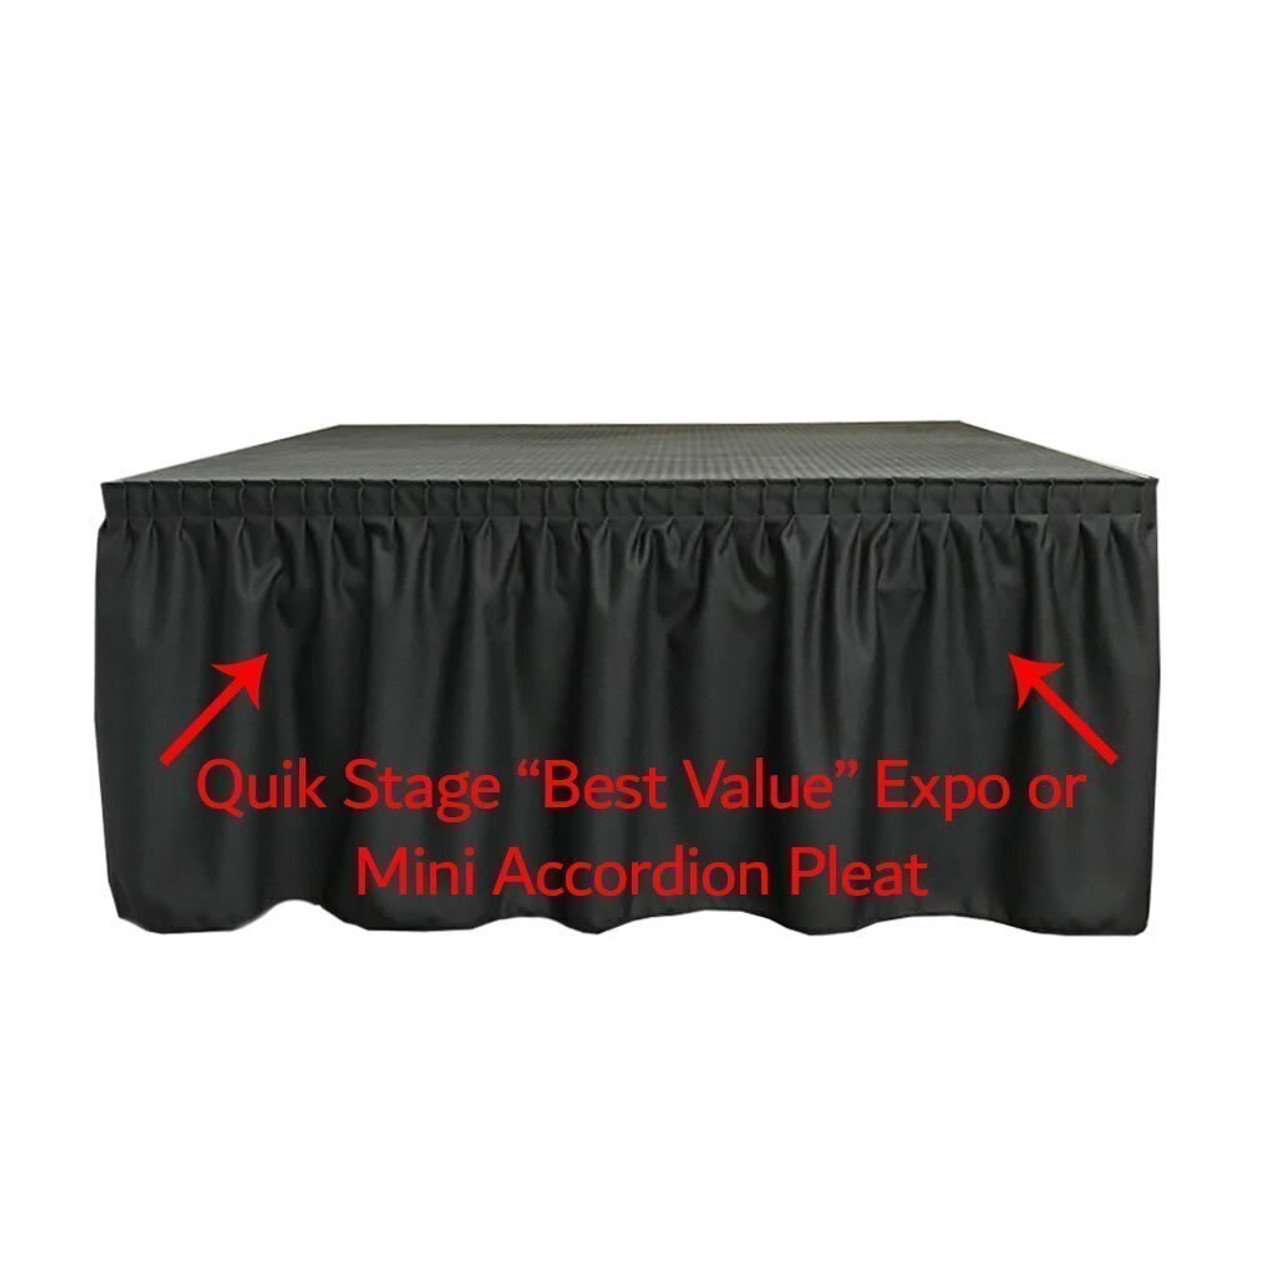 High Quality Quik Stage 8' x 12' High Portable Stage Package with Black Polyvinyl Non-Skid Surface. Additional Heights and Surfaces Available - Best Value Expo Pleat Stage Skirting